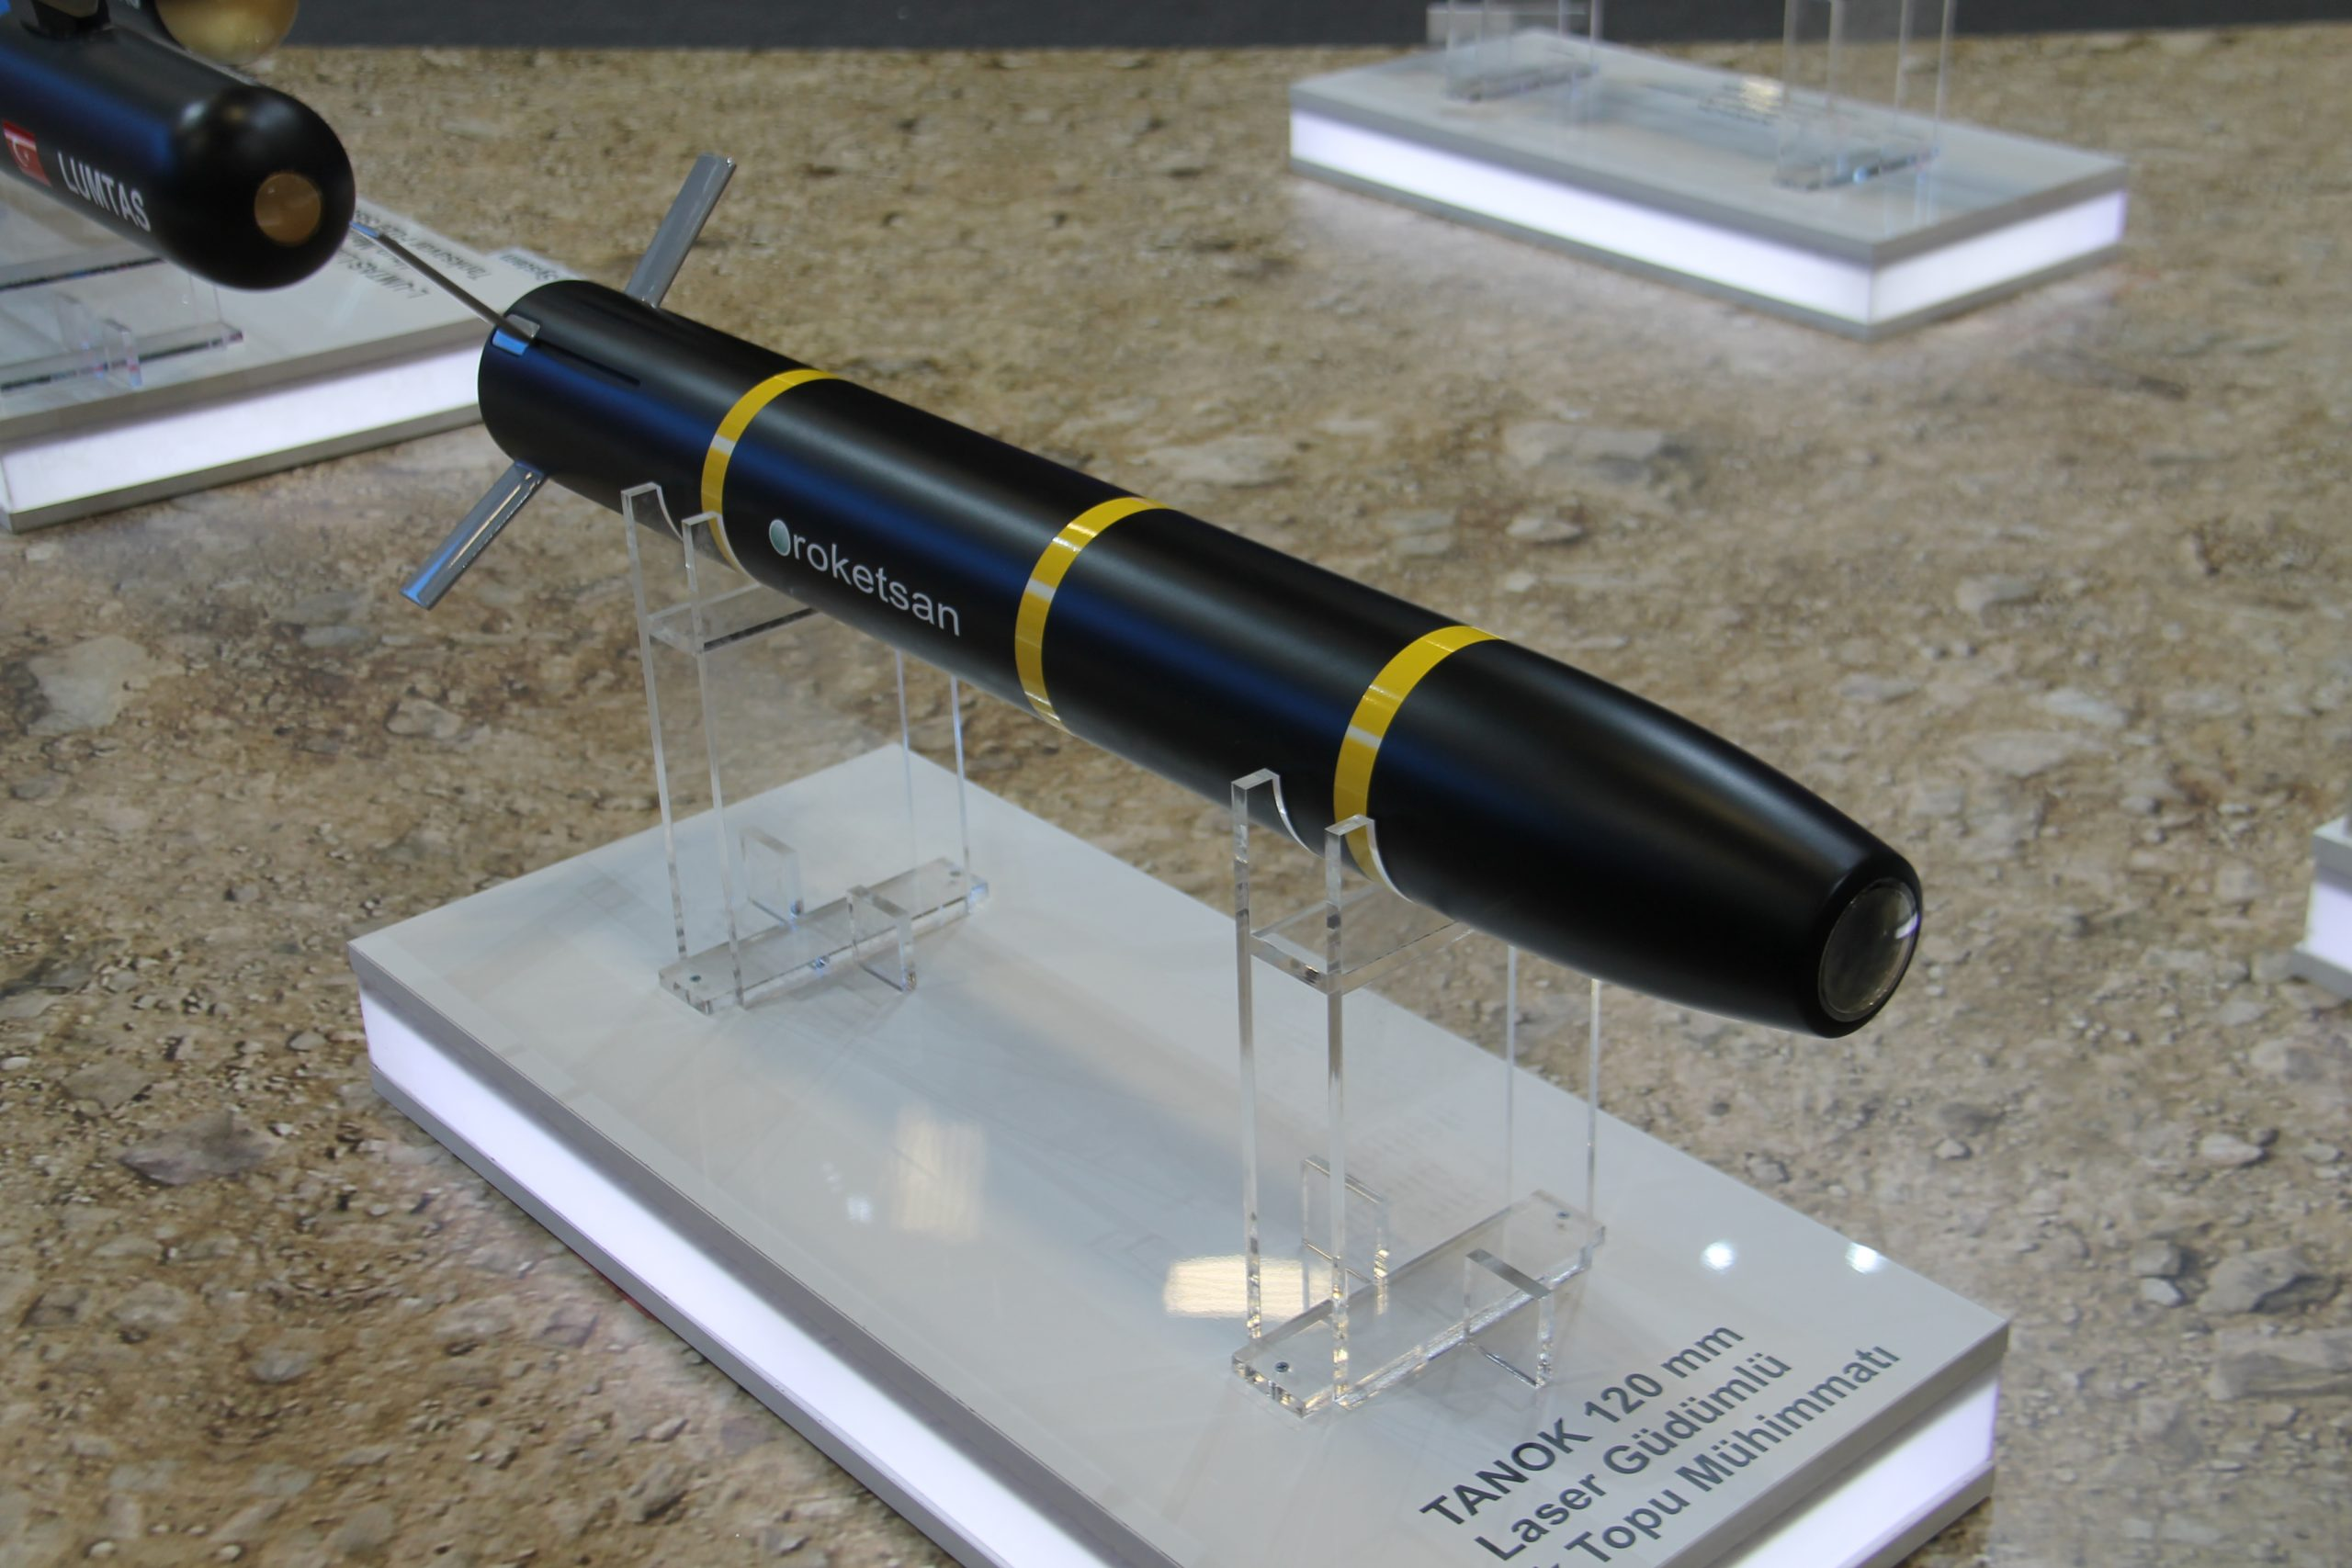 anok 120 mm tank launched guided projectile